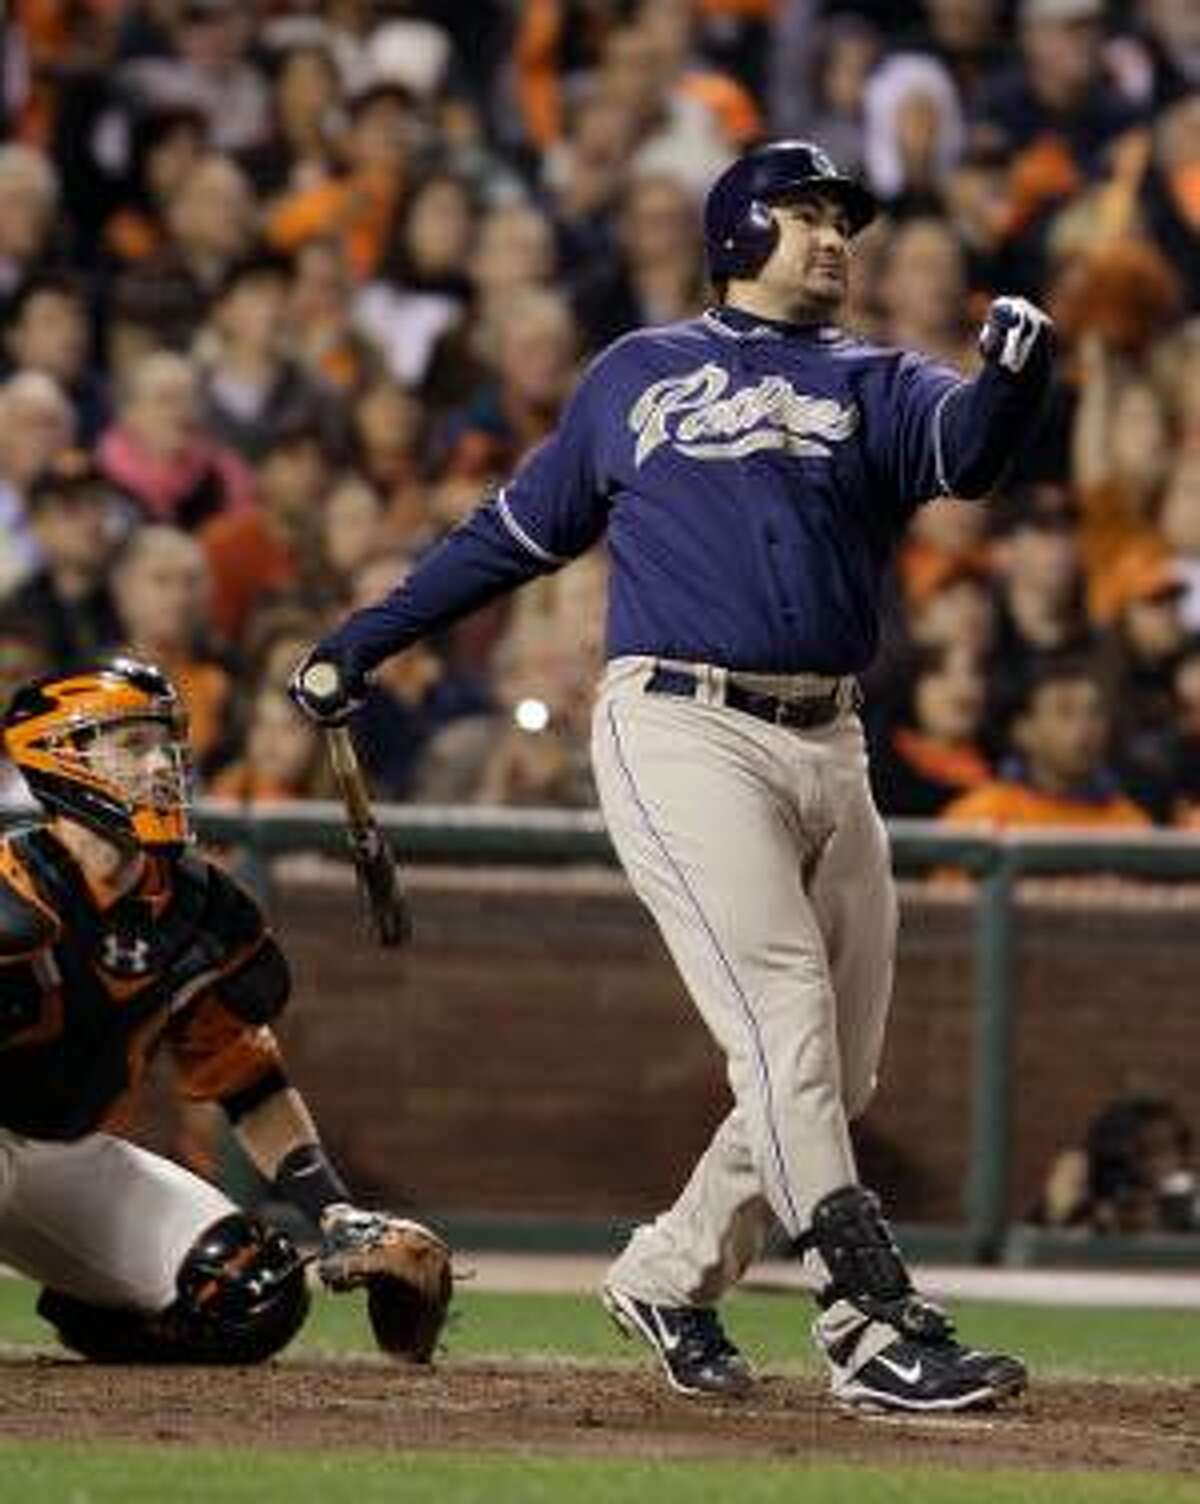 This Oct. 1, 2010, file photo shows San Diego Padres' Adrian Gonzalez hitting a three-run homer off San Francisco Giants starting pitcher Matt Cain during the third inning of their game in San Francisco. At left is San Francisco Giants catcher Buster Posey. Gonzalez has flown to Boston to take a physical exam needed to complete a trade from the San Diego Padres to the Red Sox, a person familiar with the situation told The Associated Press on Saturday. (AP Photo/Eric Risberg, FILE)